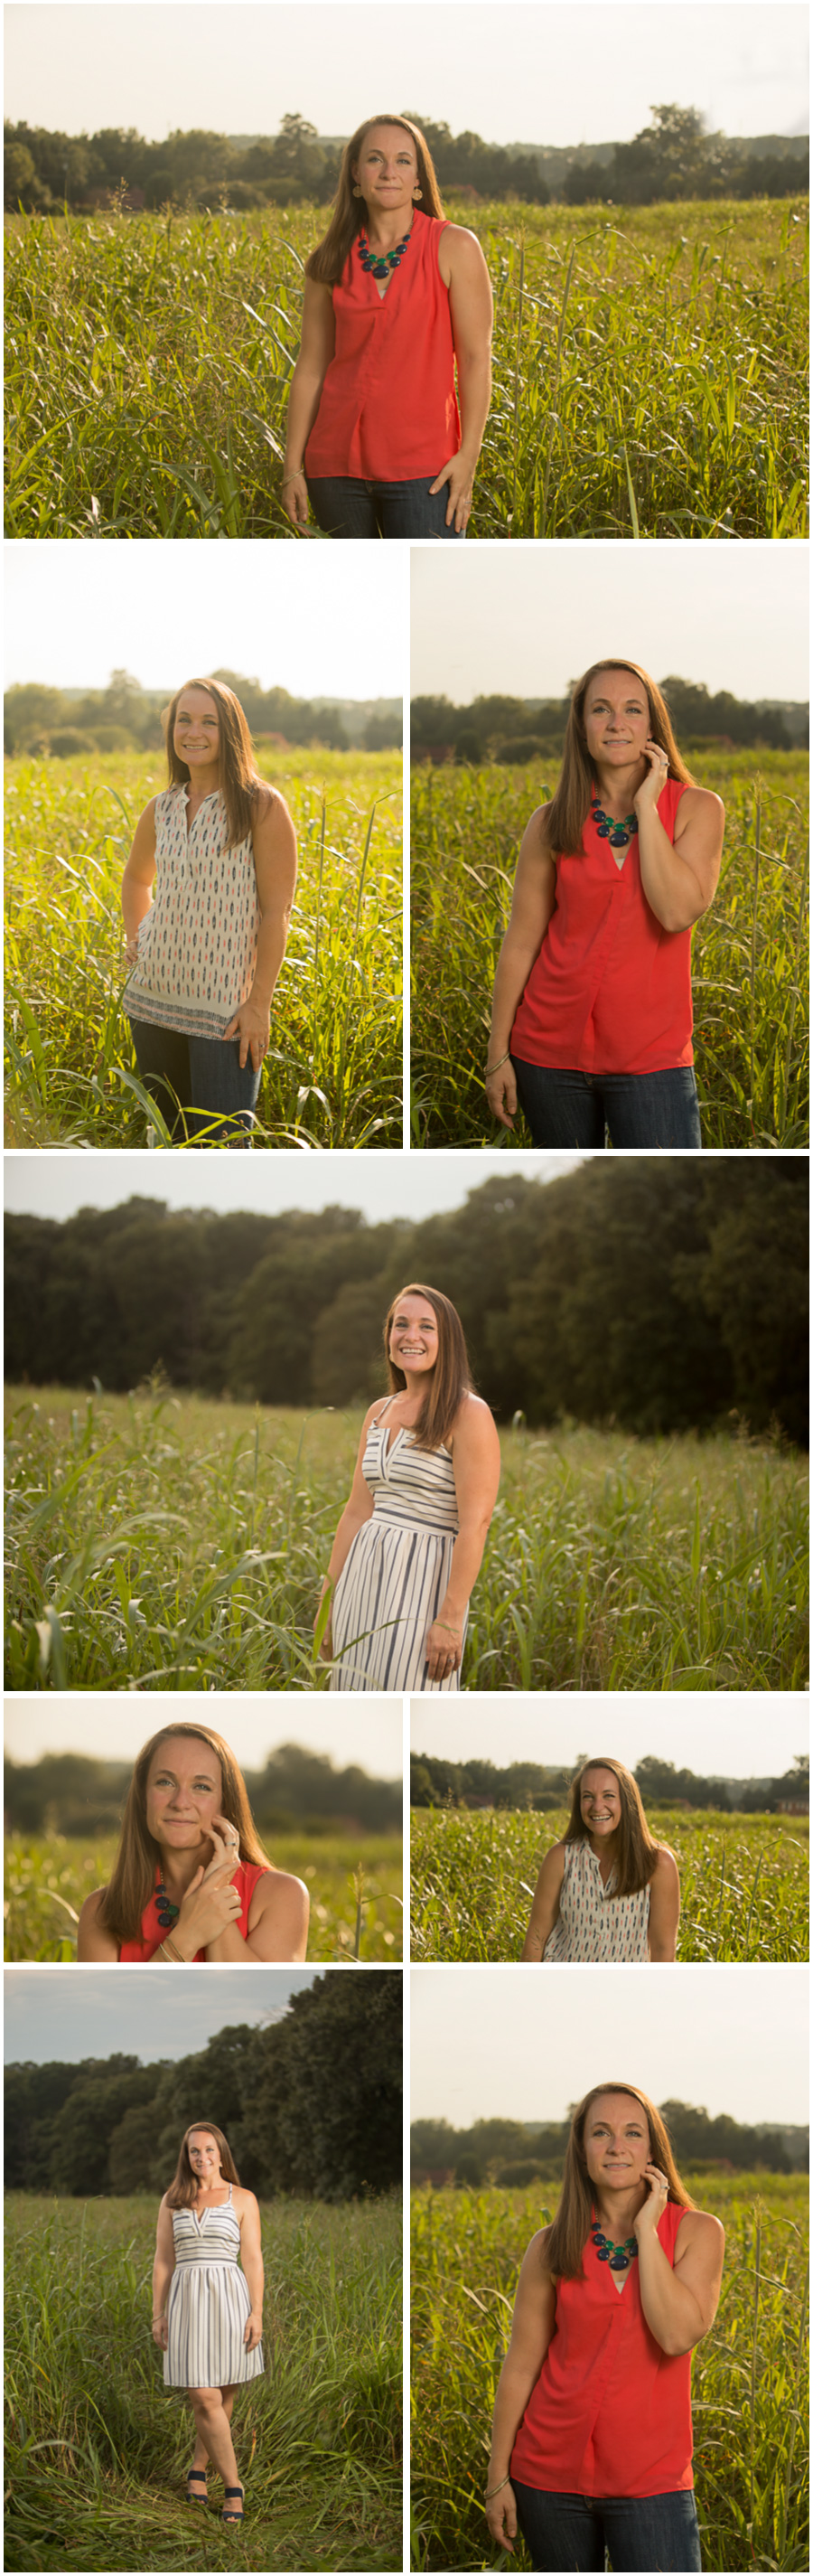 Suwanee Georgia Fields with Colleen Hight Photography